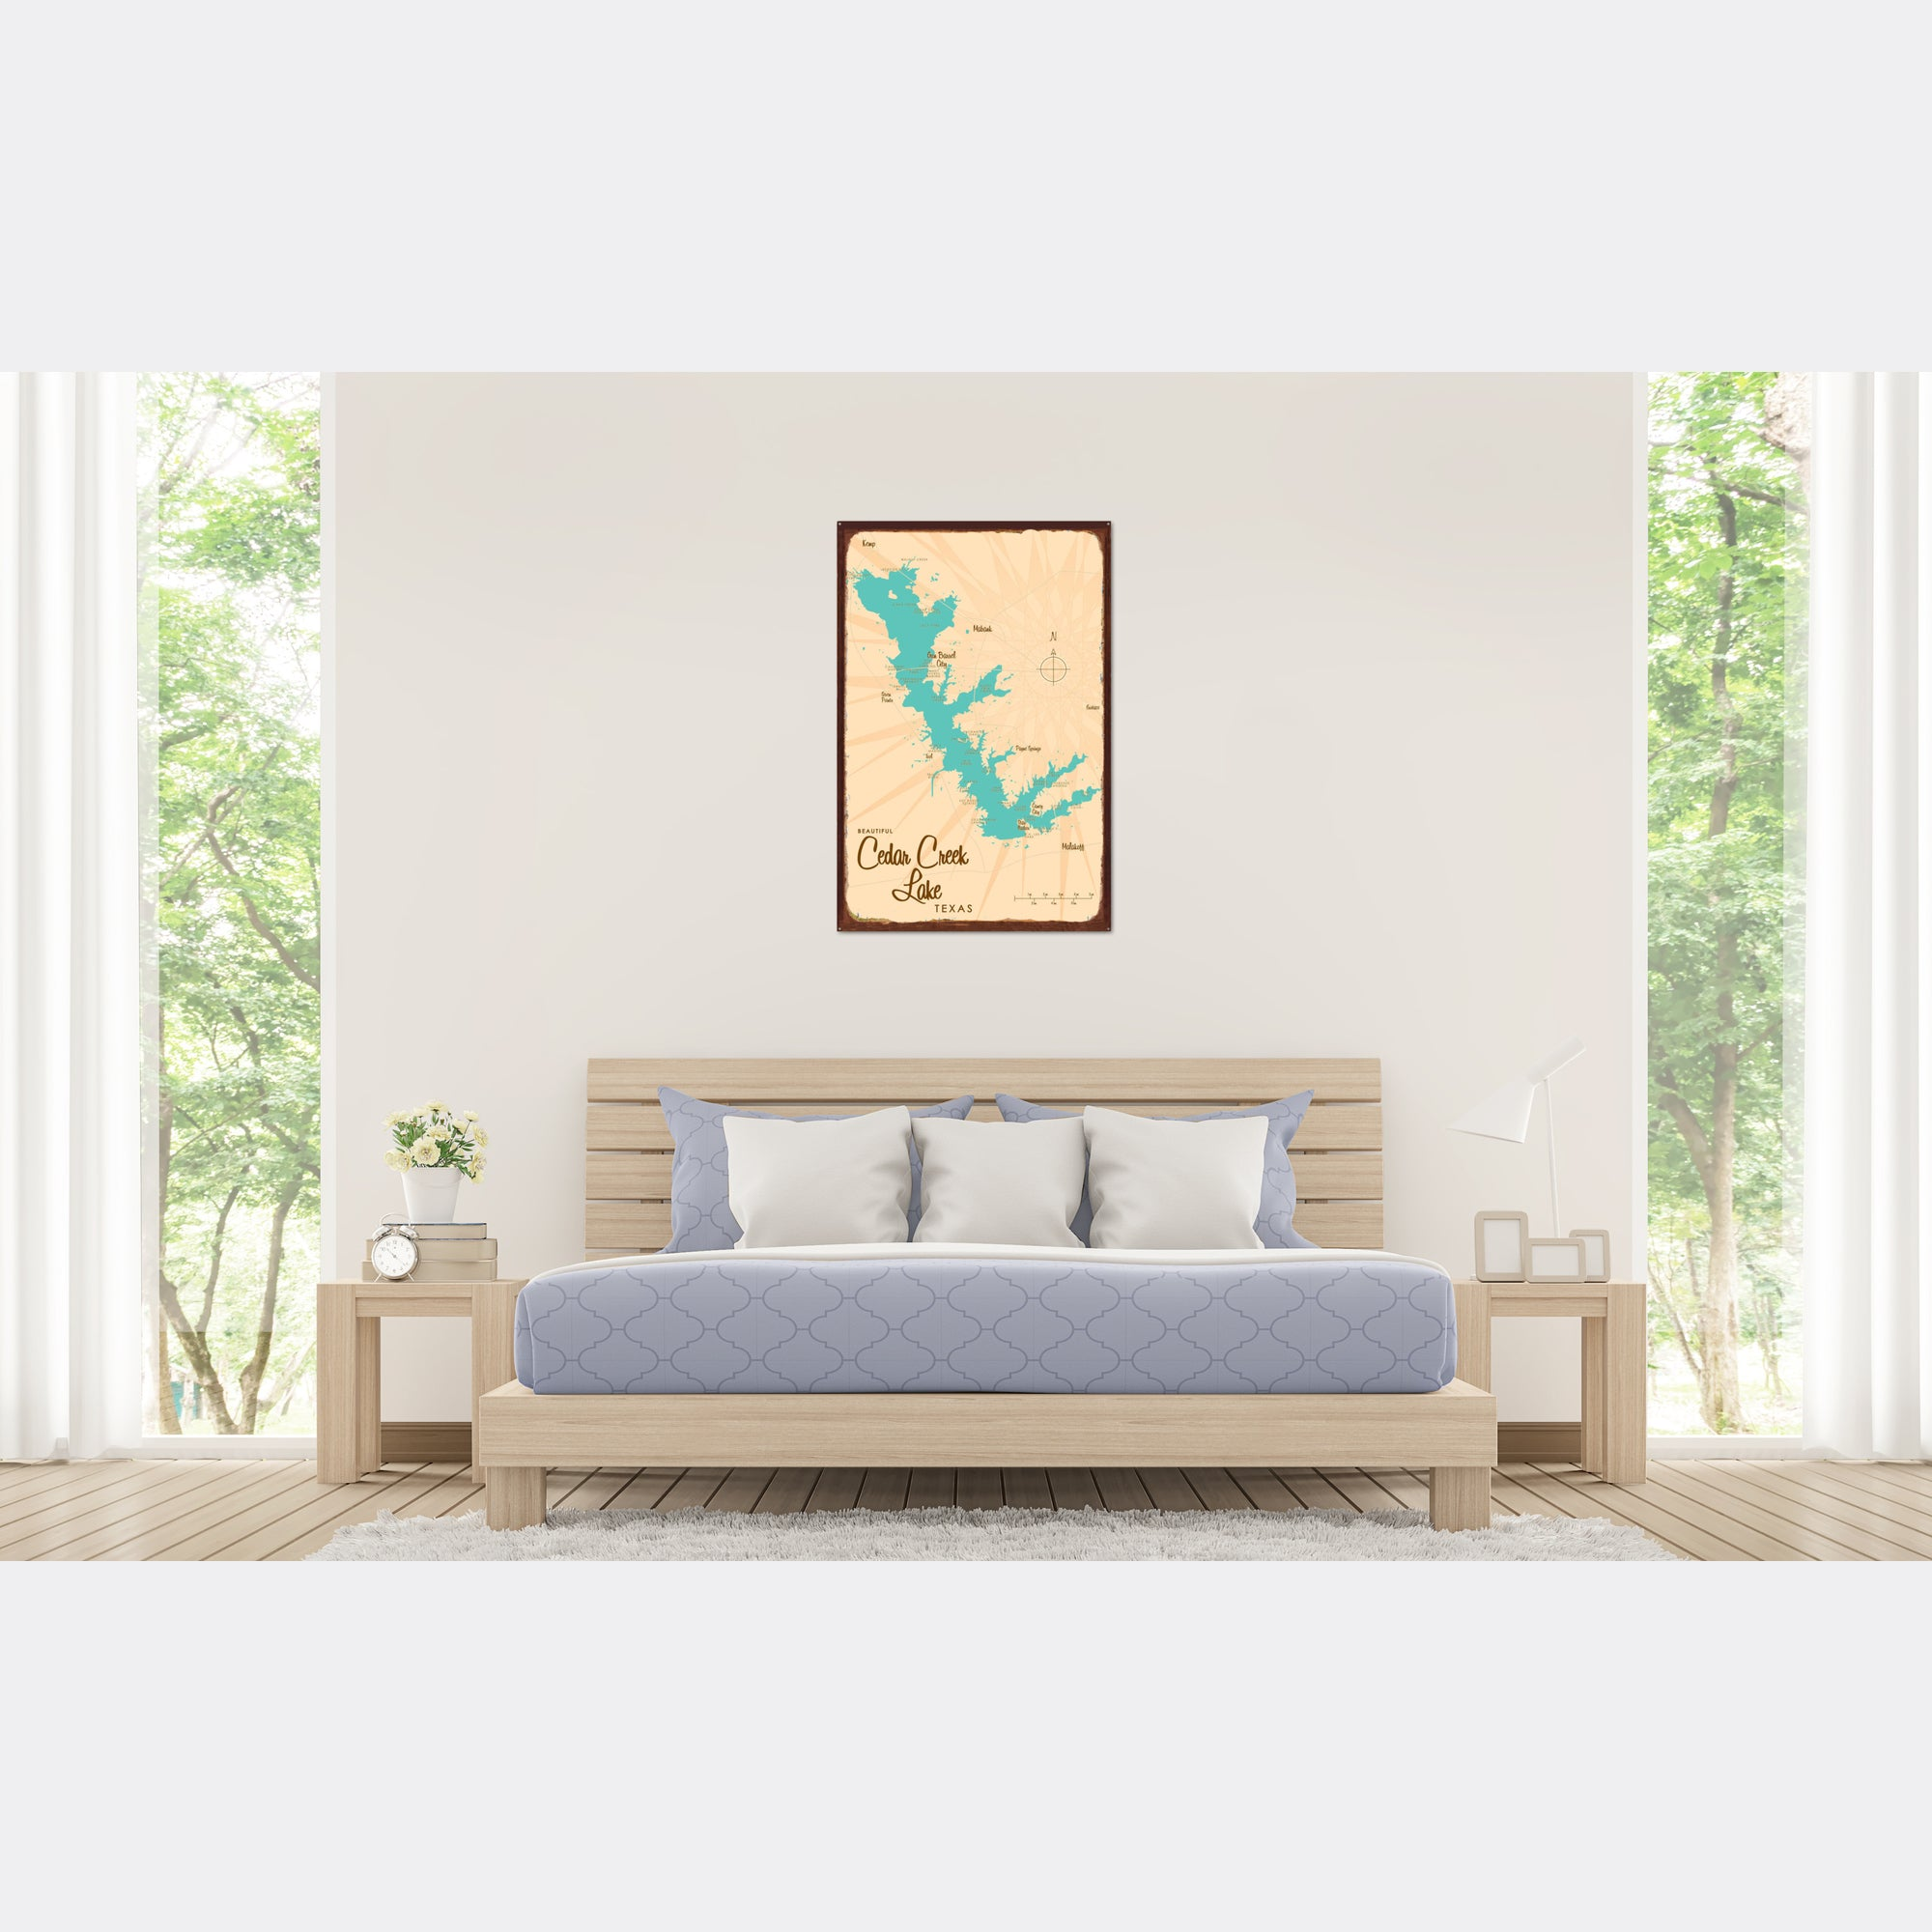 Cedar Creek Lake Texas, Rustic Metal Sign Map Art